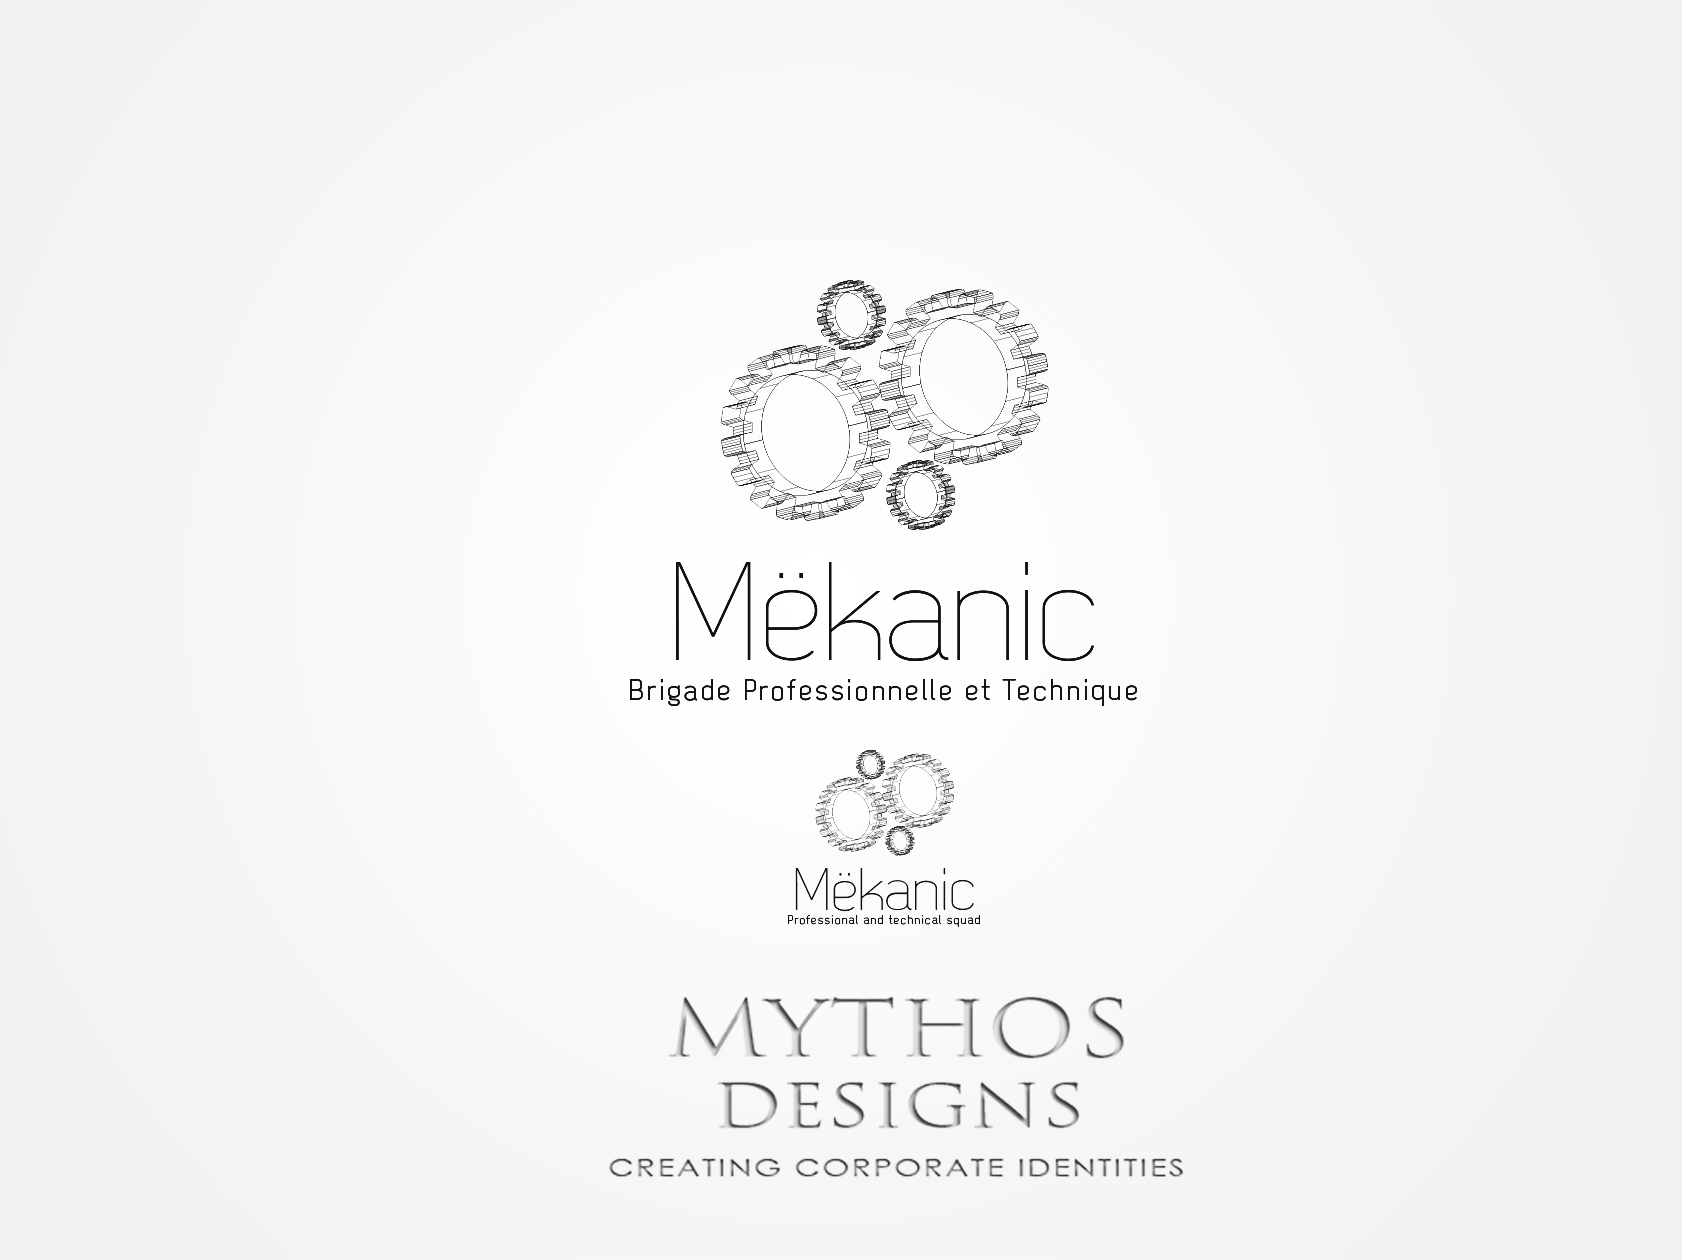 Logo Design by Mythos Designs - Entry No. 158 in the Logo Design Contest Creative Logo Design for MËKANIC - Professional and technical squad.